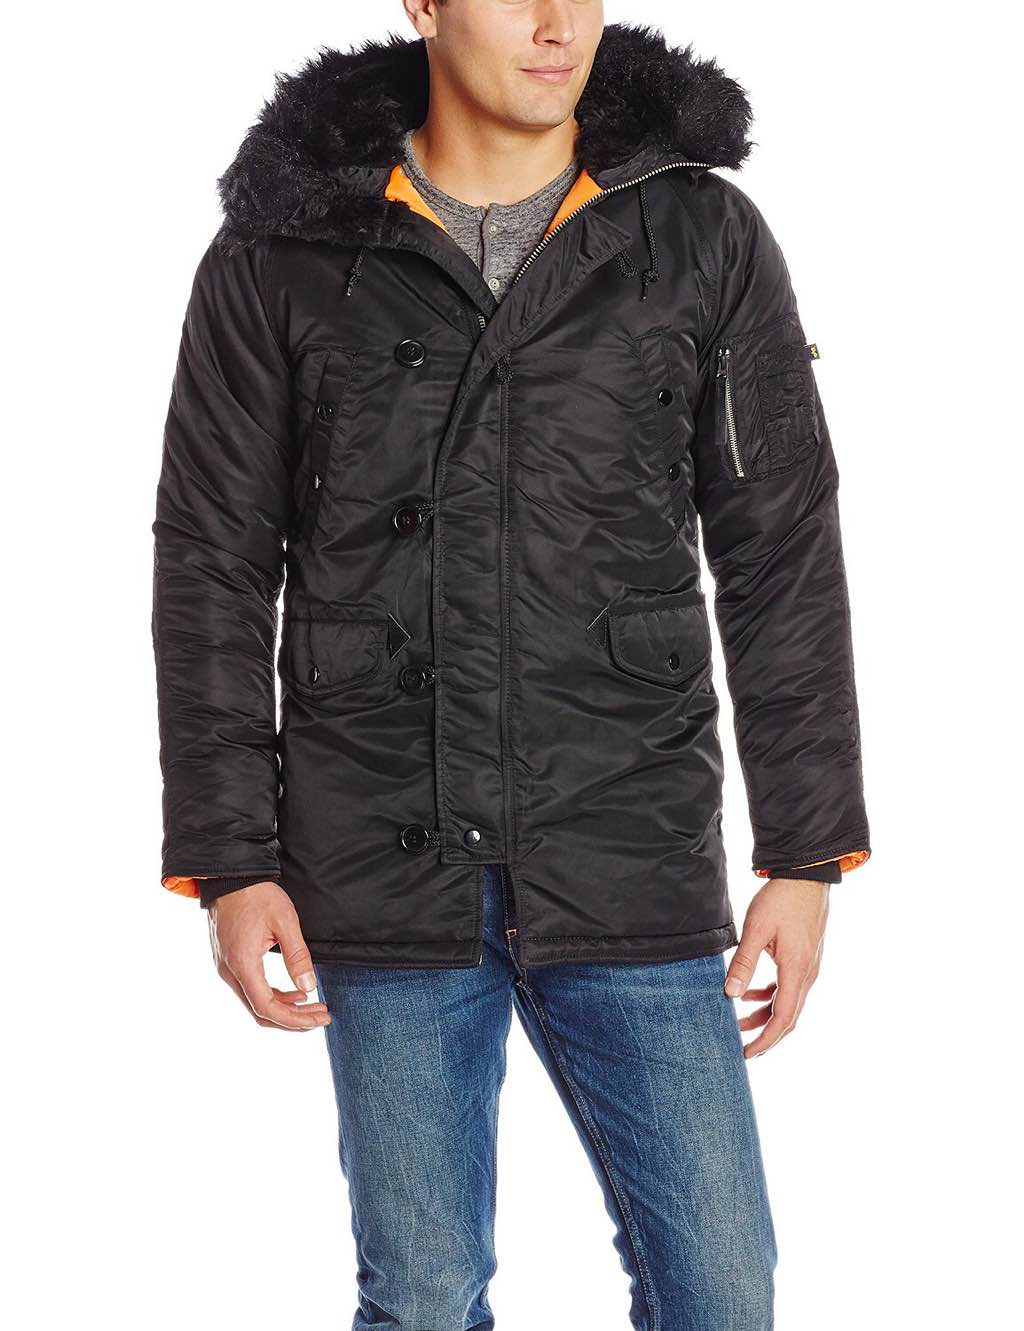 Alpha Industries' N-3B slim-fit parka. ($121–$200)